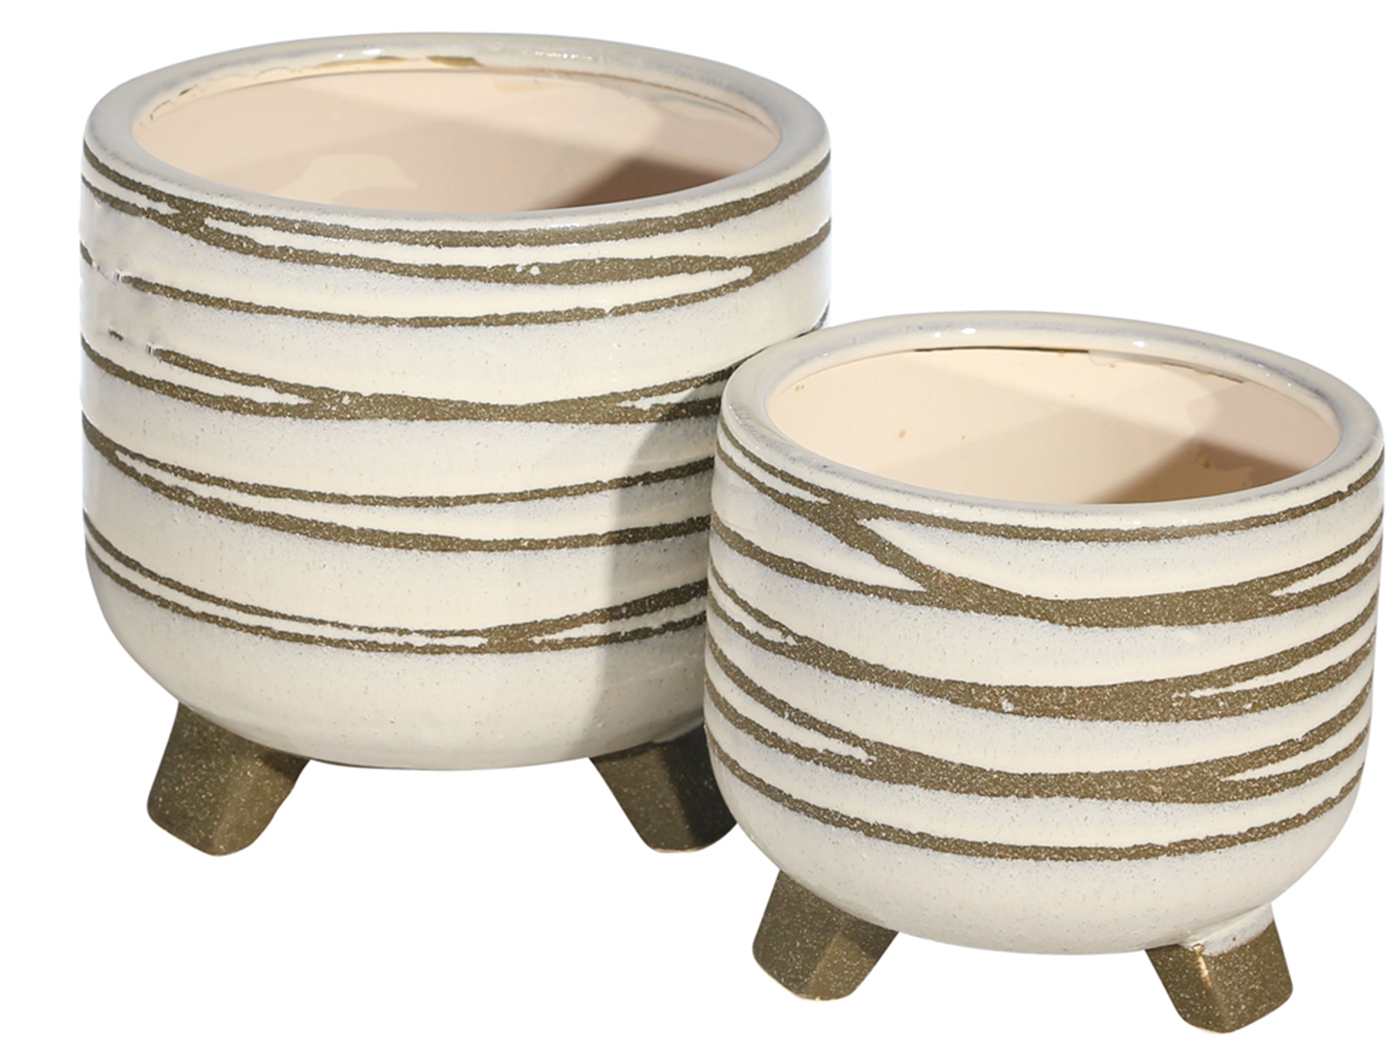 "Set of 2 Cream and Taupe Planters 6/8""W x 6/8""H"